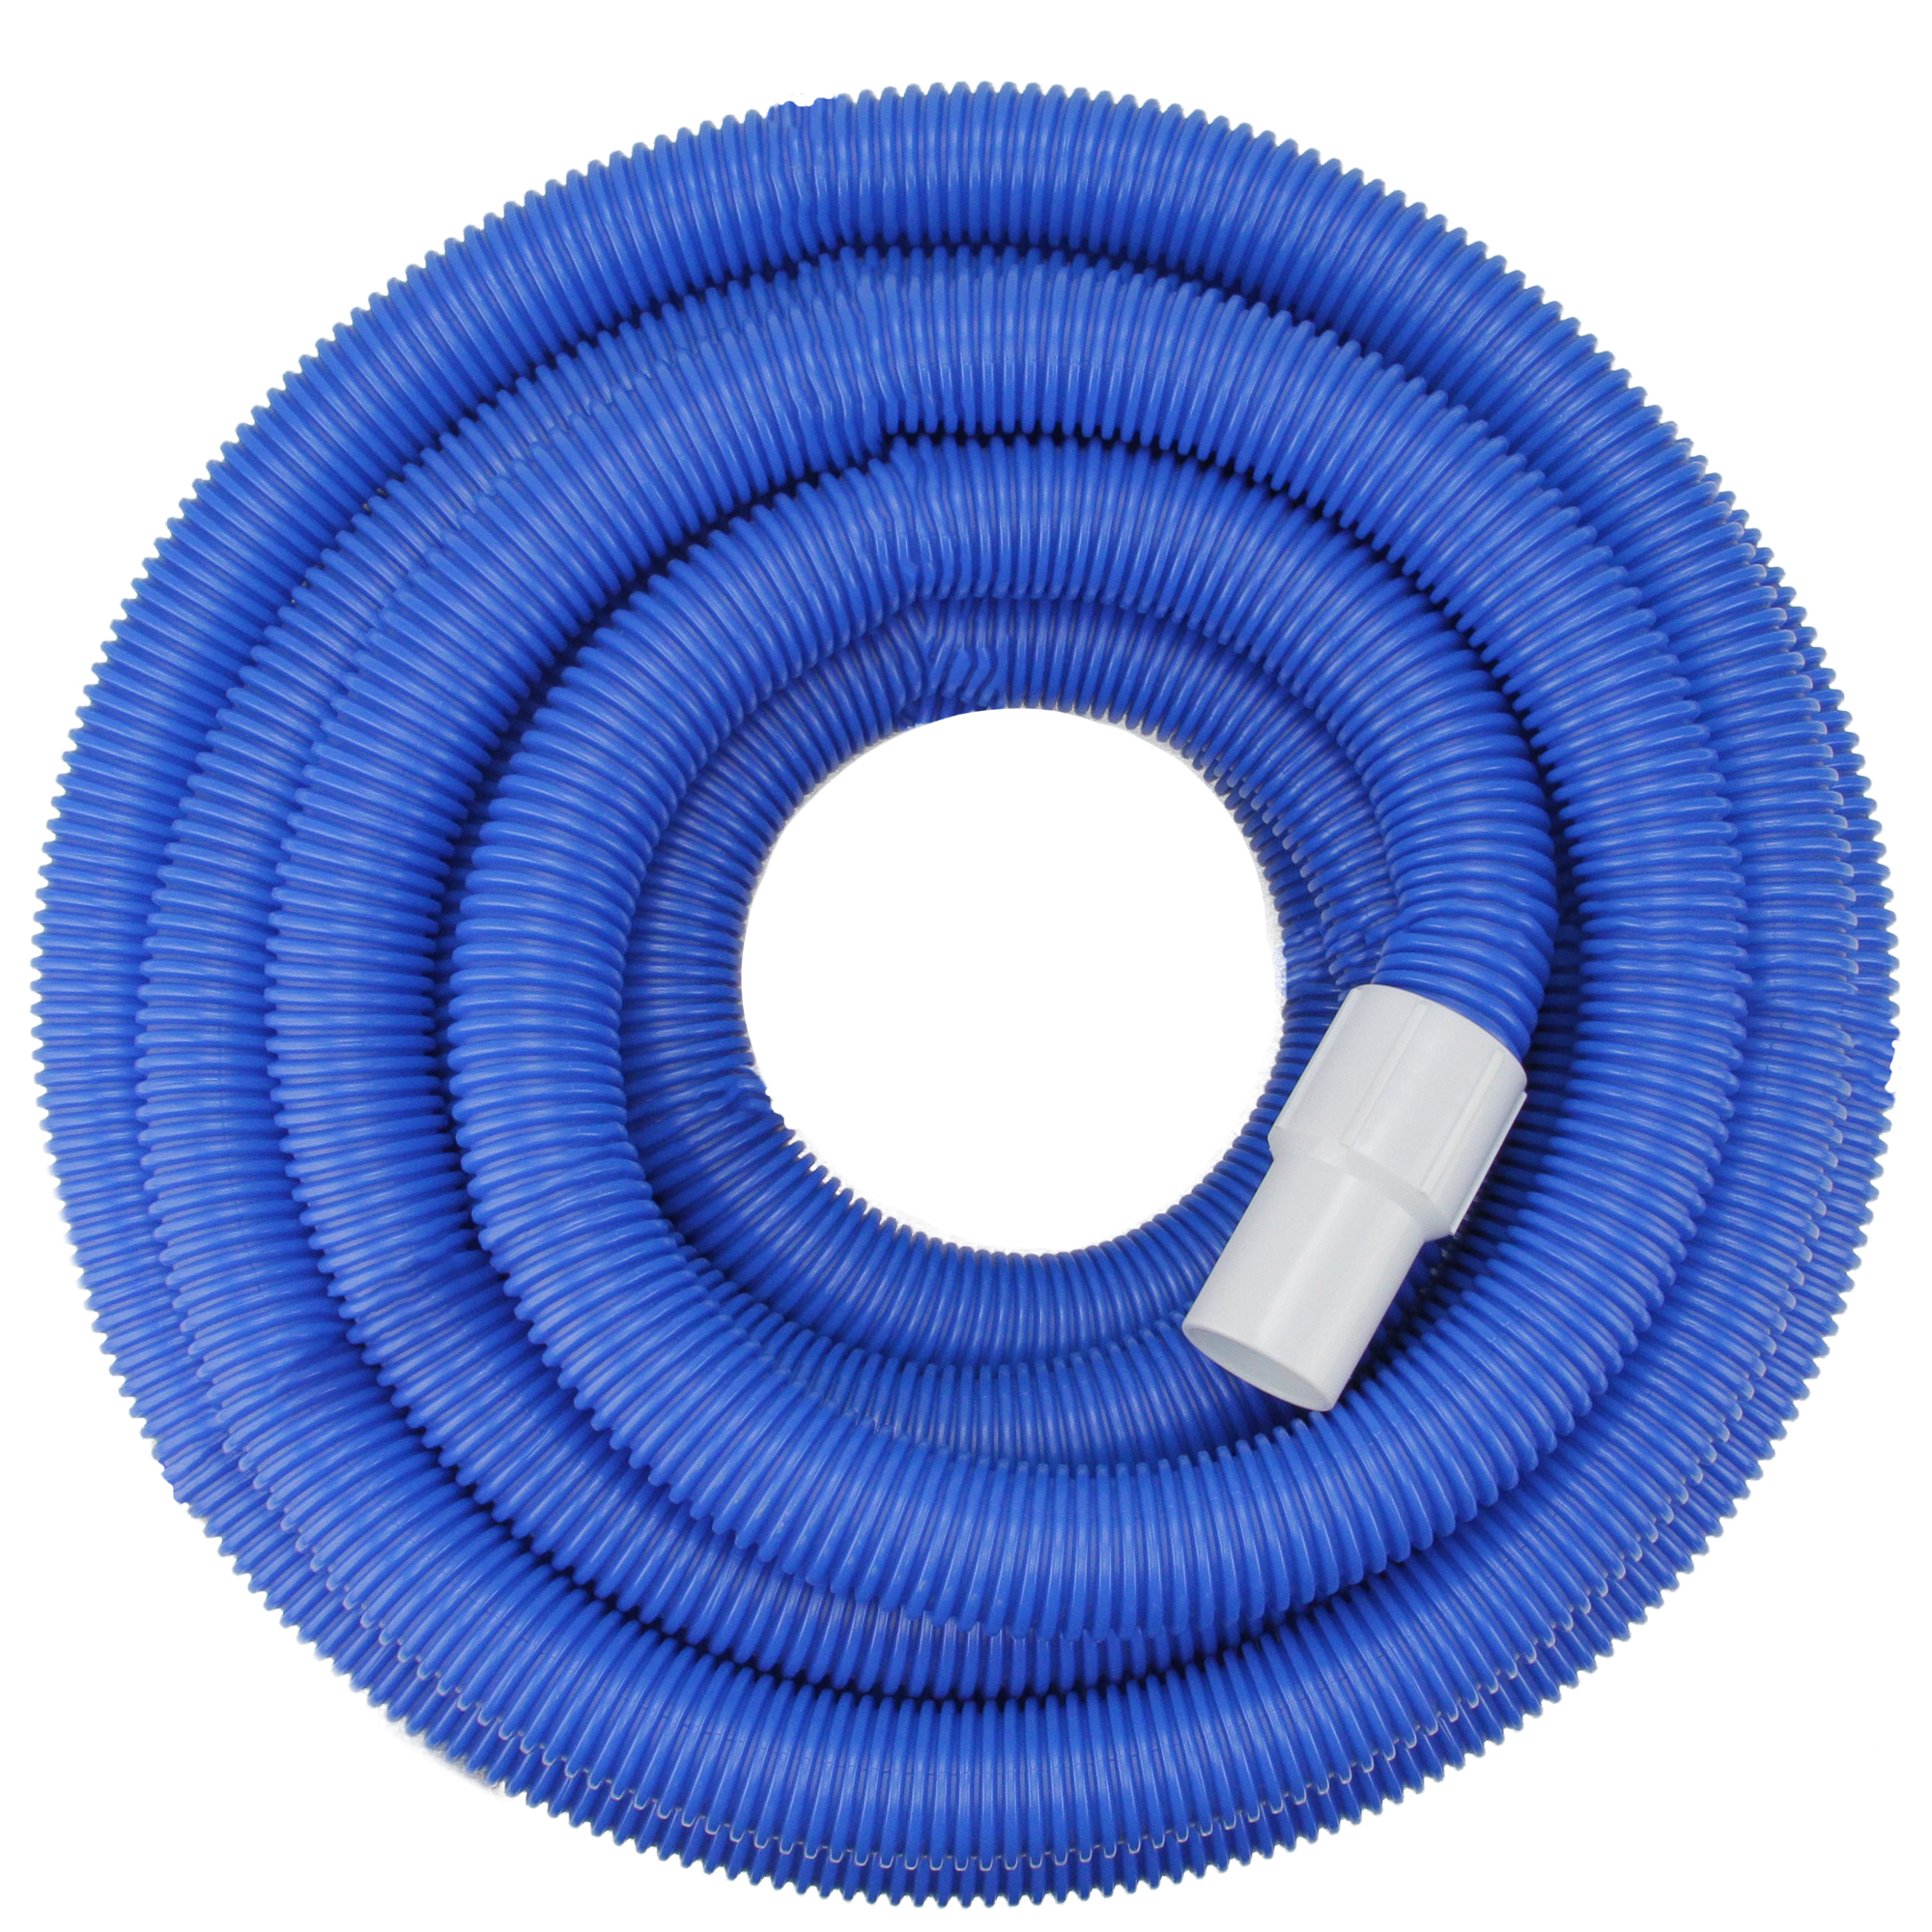 Blue Blow-Molded PE In-Ground Swimming Pool Vacuum Hose with Swivel Cuff - 25' x 1.5""